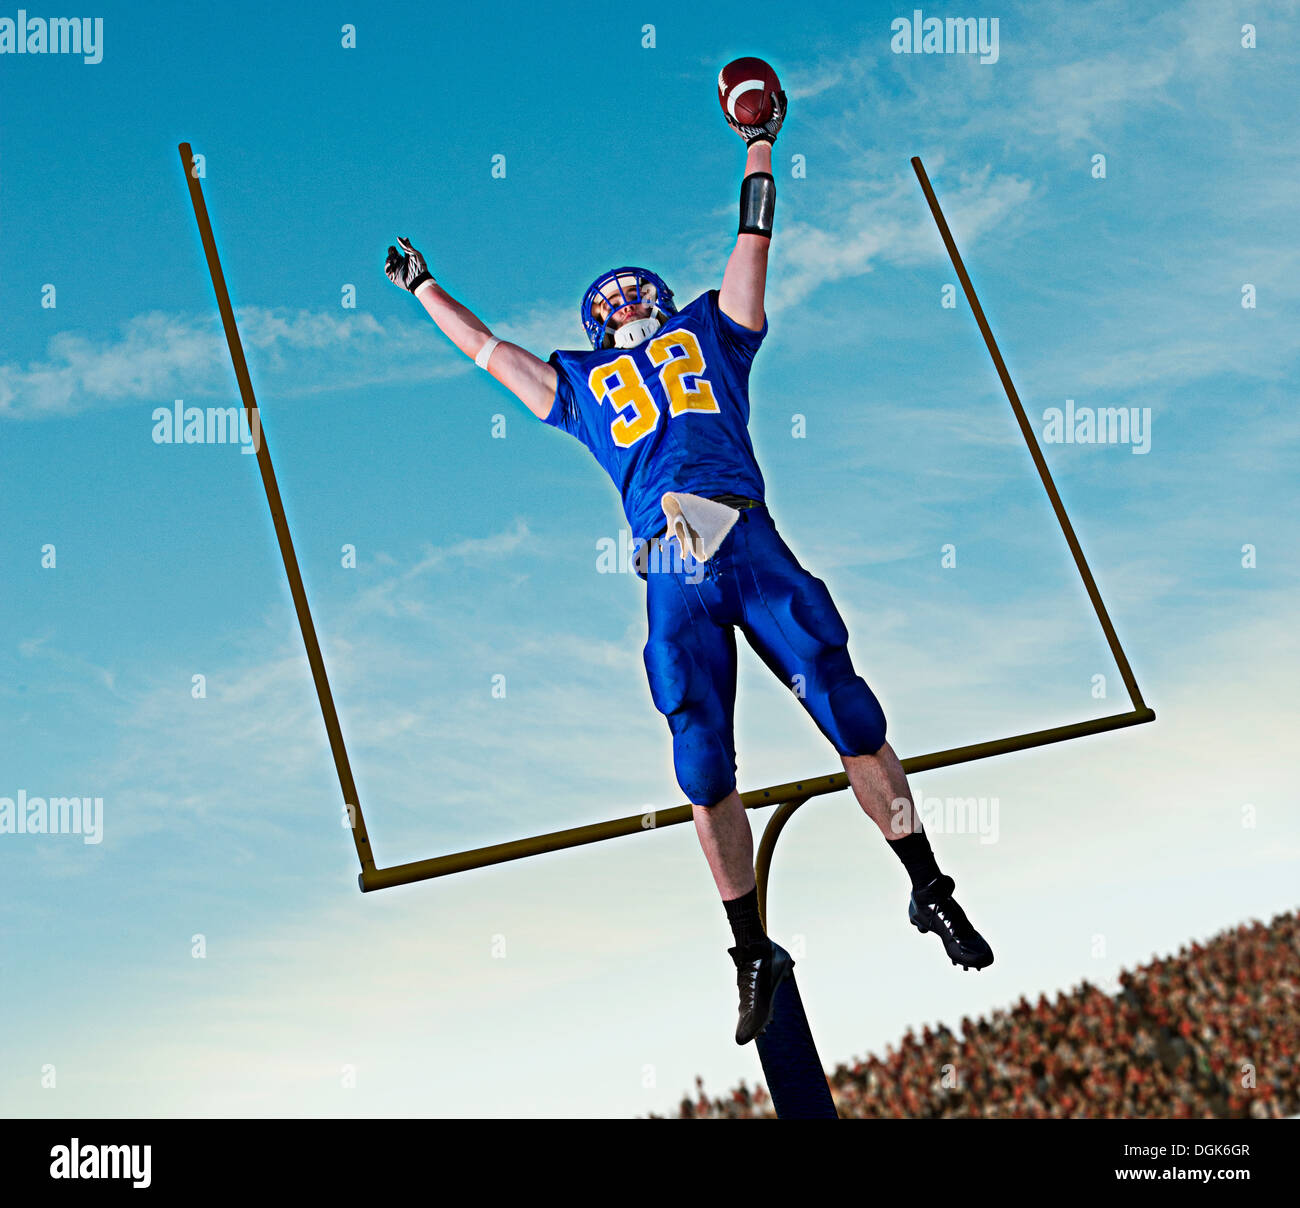 American footballer jumping to catch ball in front of goal - Stock Image